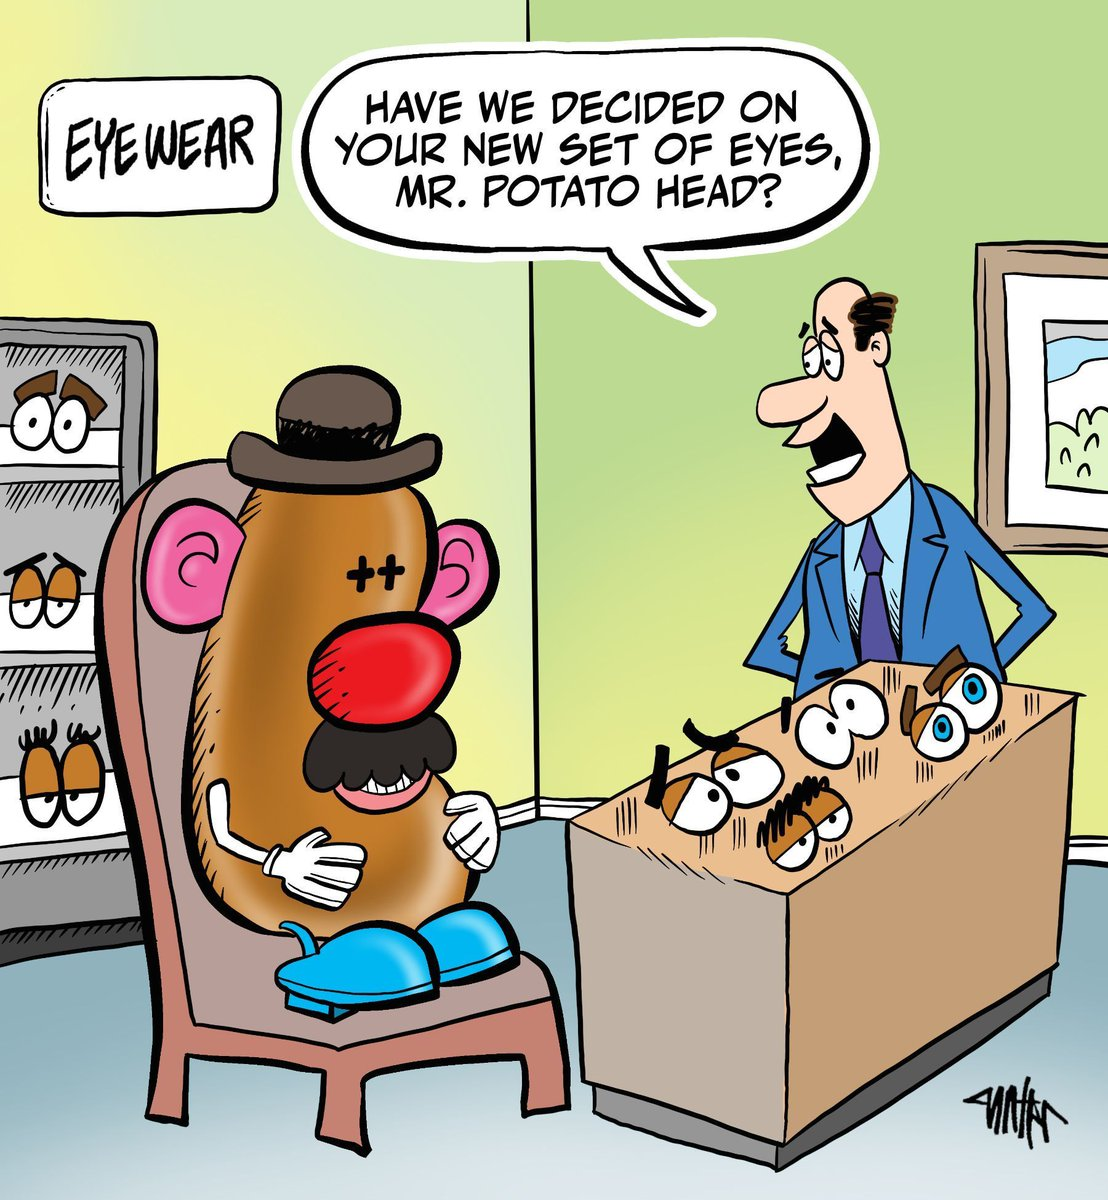 test Twitter Media - See more Optic Relief content here: https://t.co/g4sFyd5TvW #ophthalmology #opticrelief #cartoon #eyecare https://t.co/fxwBSqwj4v